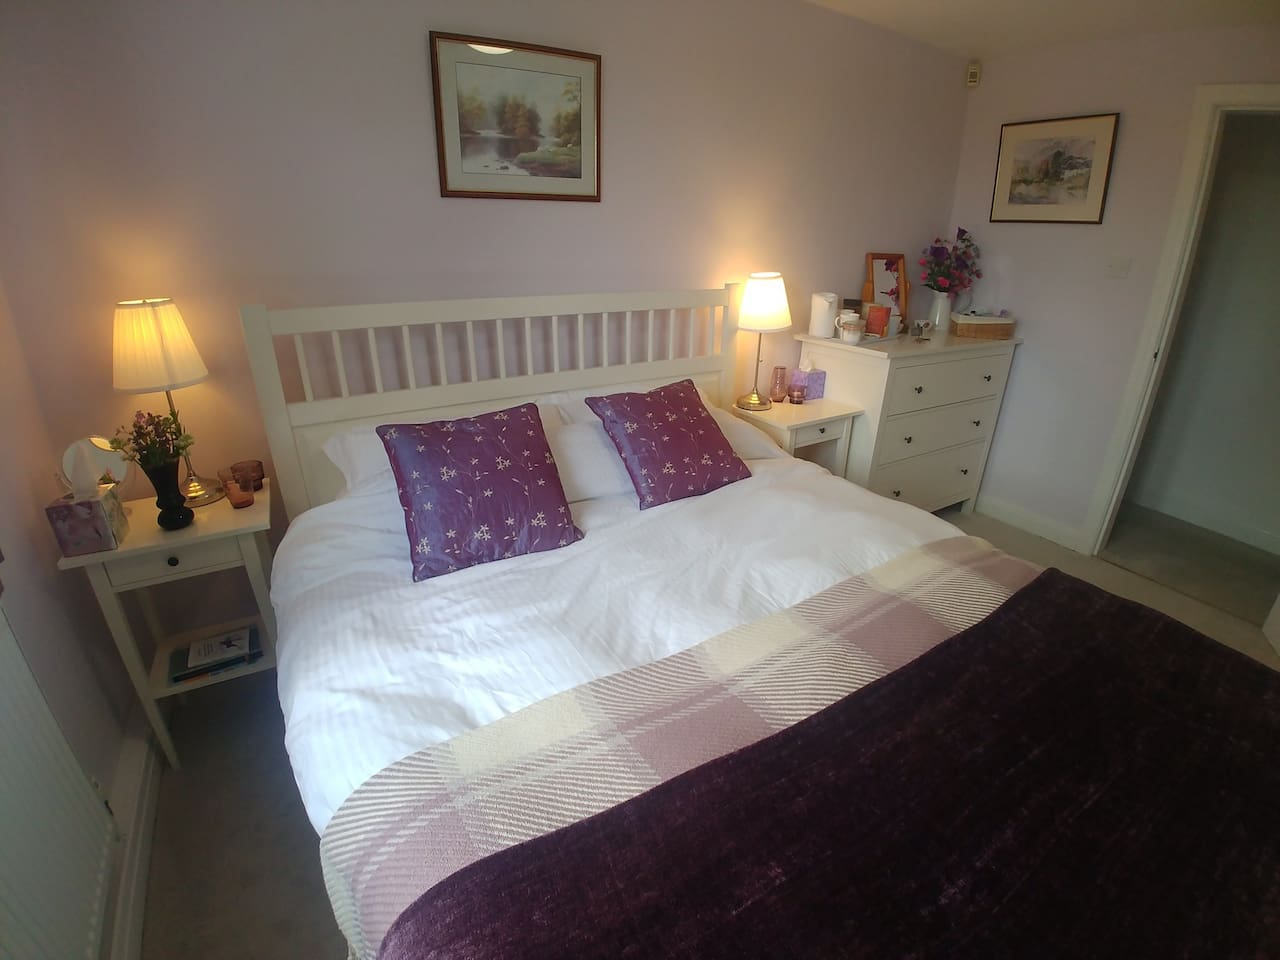 Lovely comfy king size bed to snuggle into